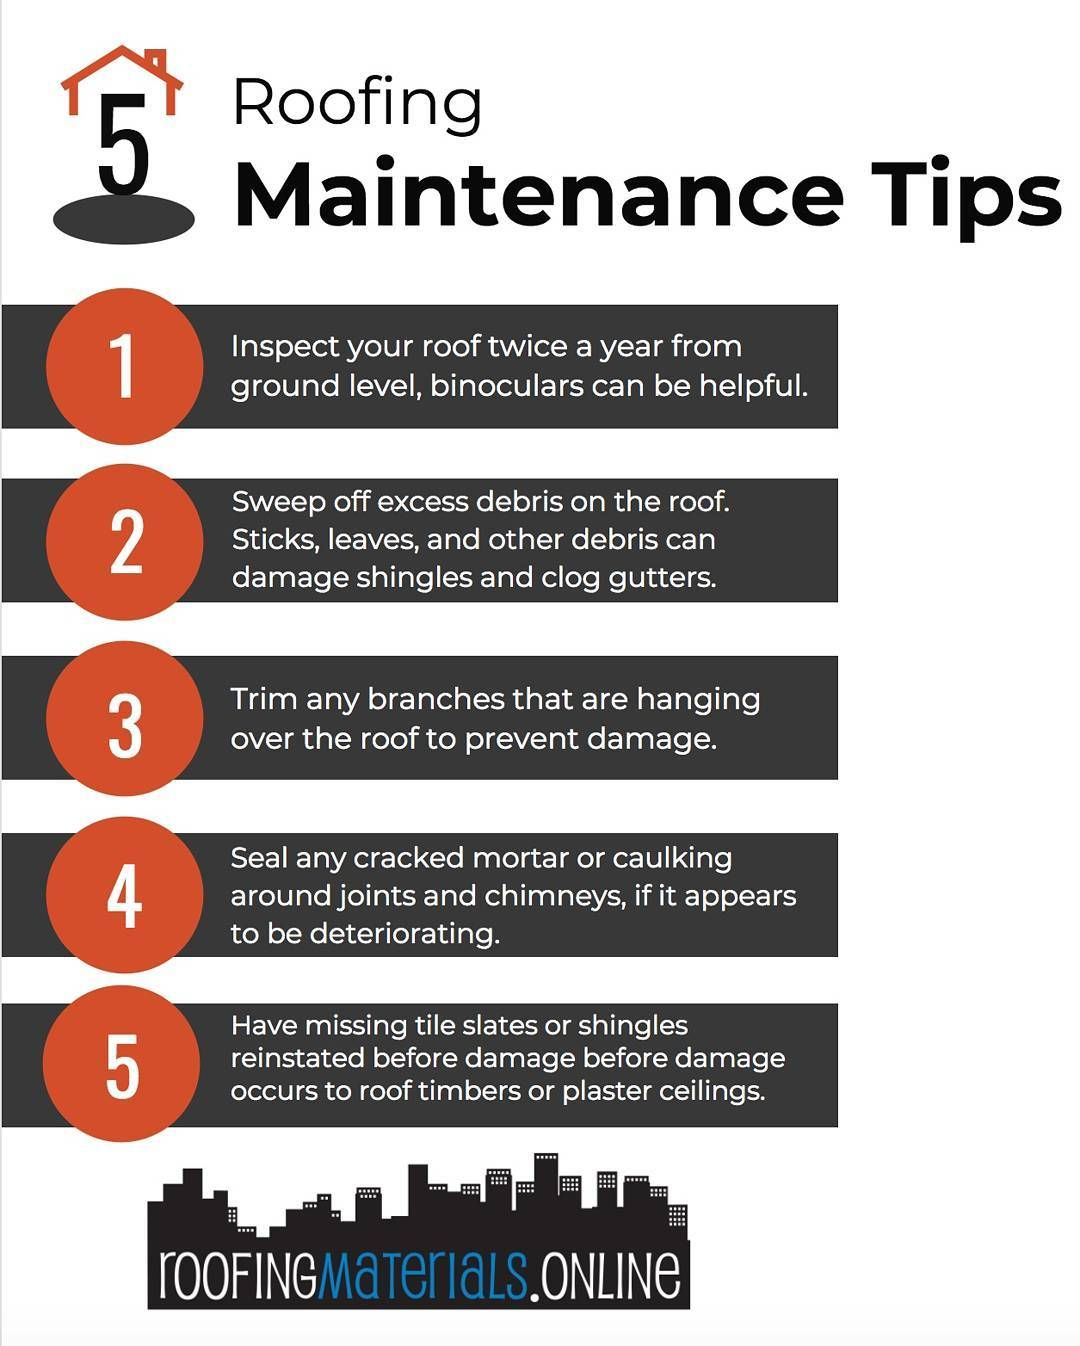 5 Roofing Maintenance Tips Do You Have Some More Comment Below Roofing Roof Maintenance How To Level Ground